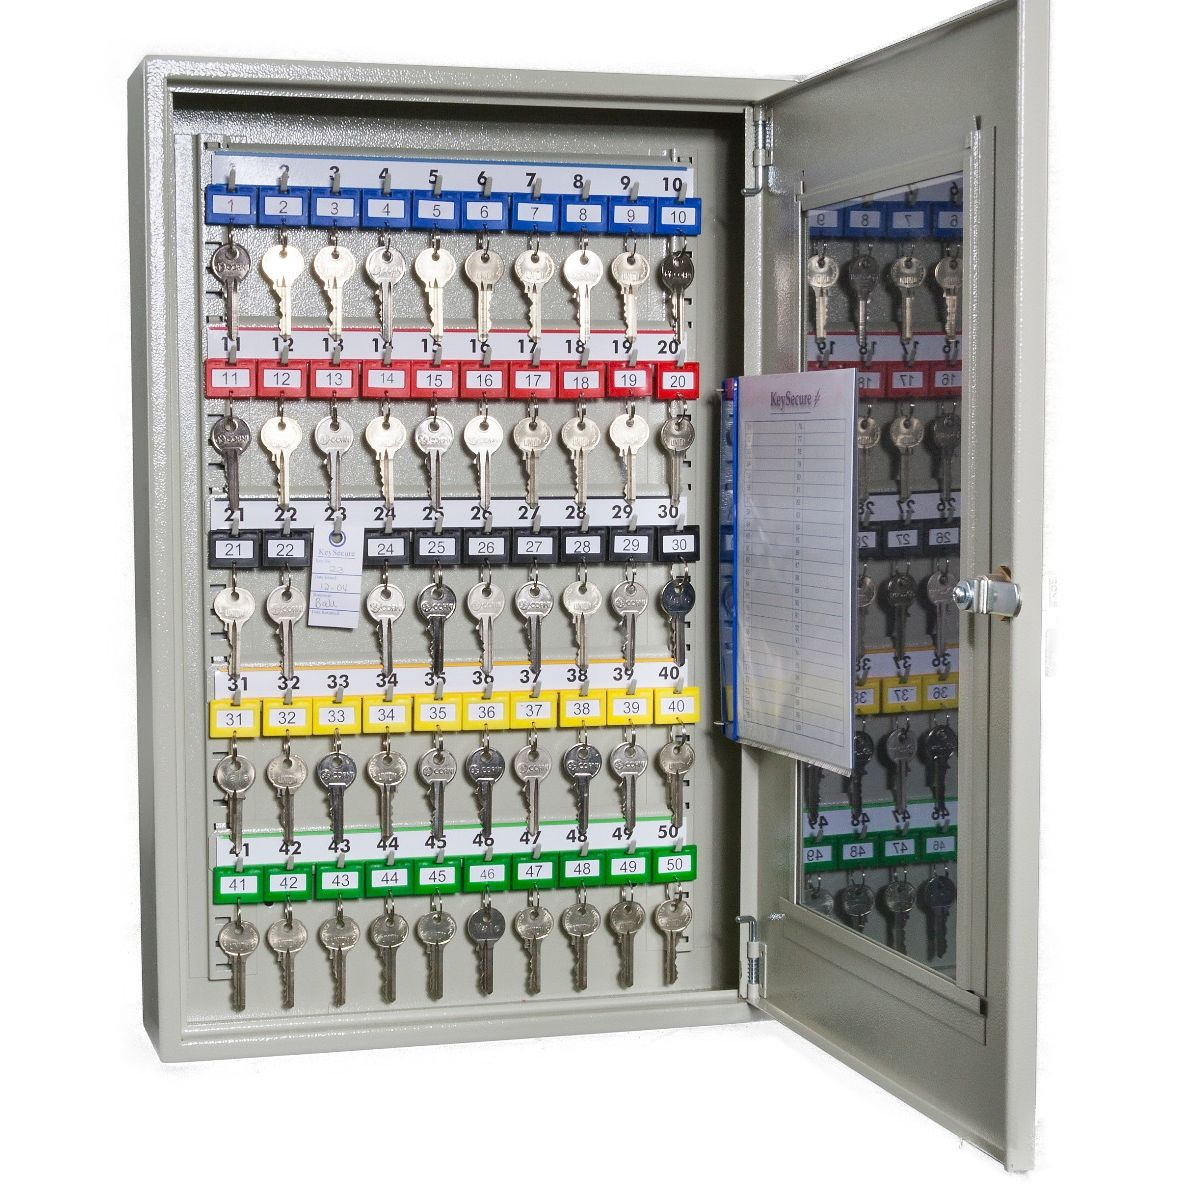 clear_fronted_perspex_key_cabinets_with_electronic_cam_lock_50_hook_35_x_38_x_10.5cm_open.jpg